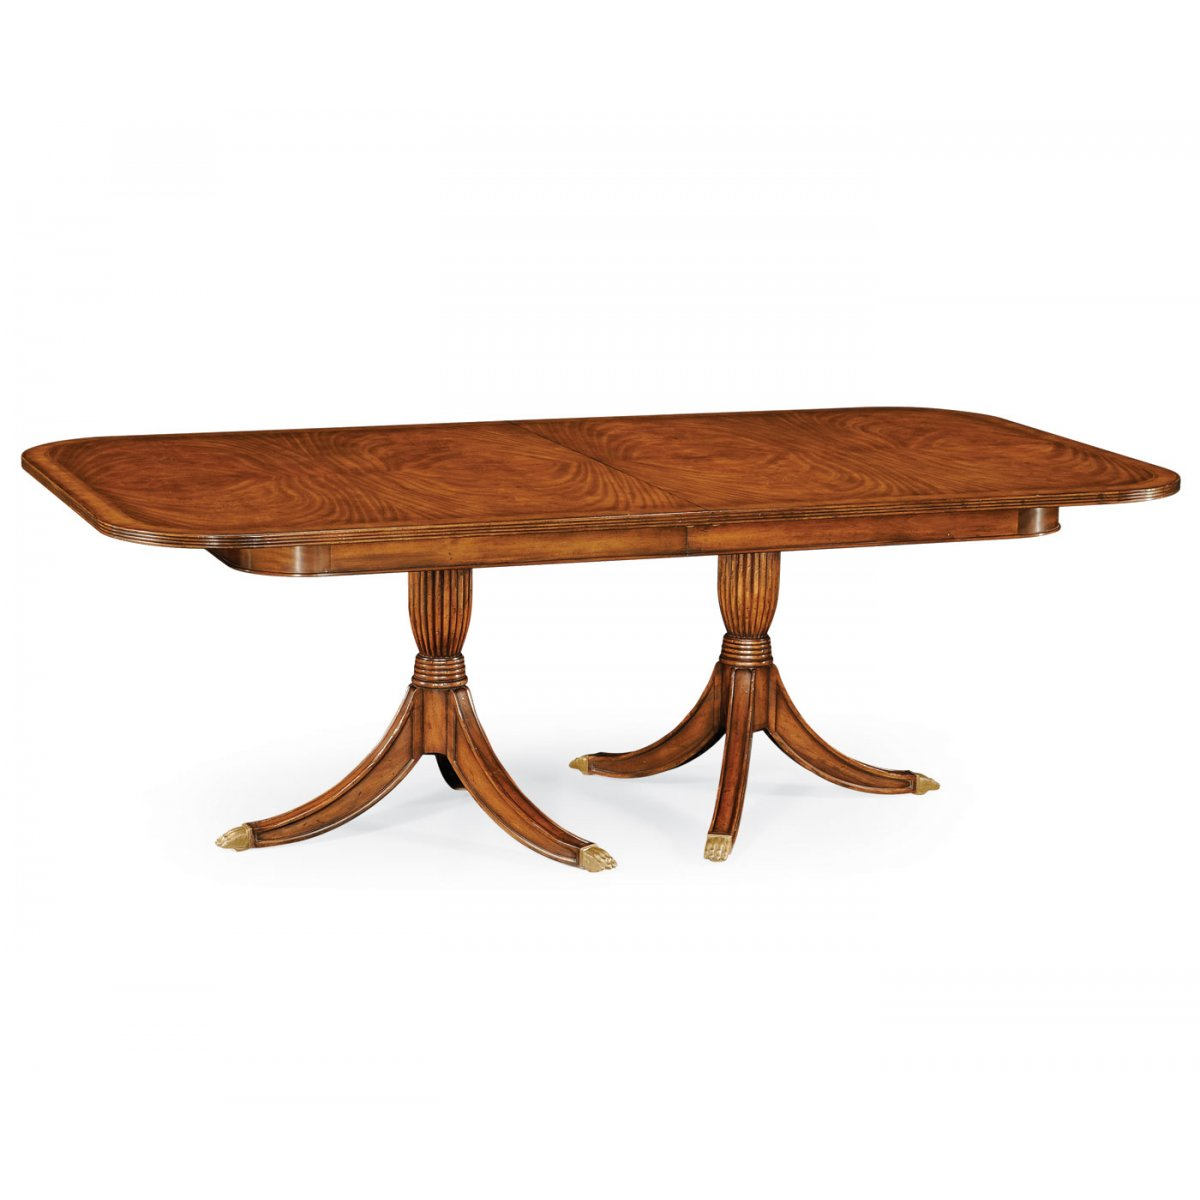 8 12 seater walnut extending dining table swanky interiors for 12 seater dining table designs